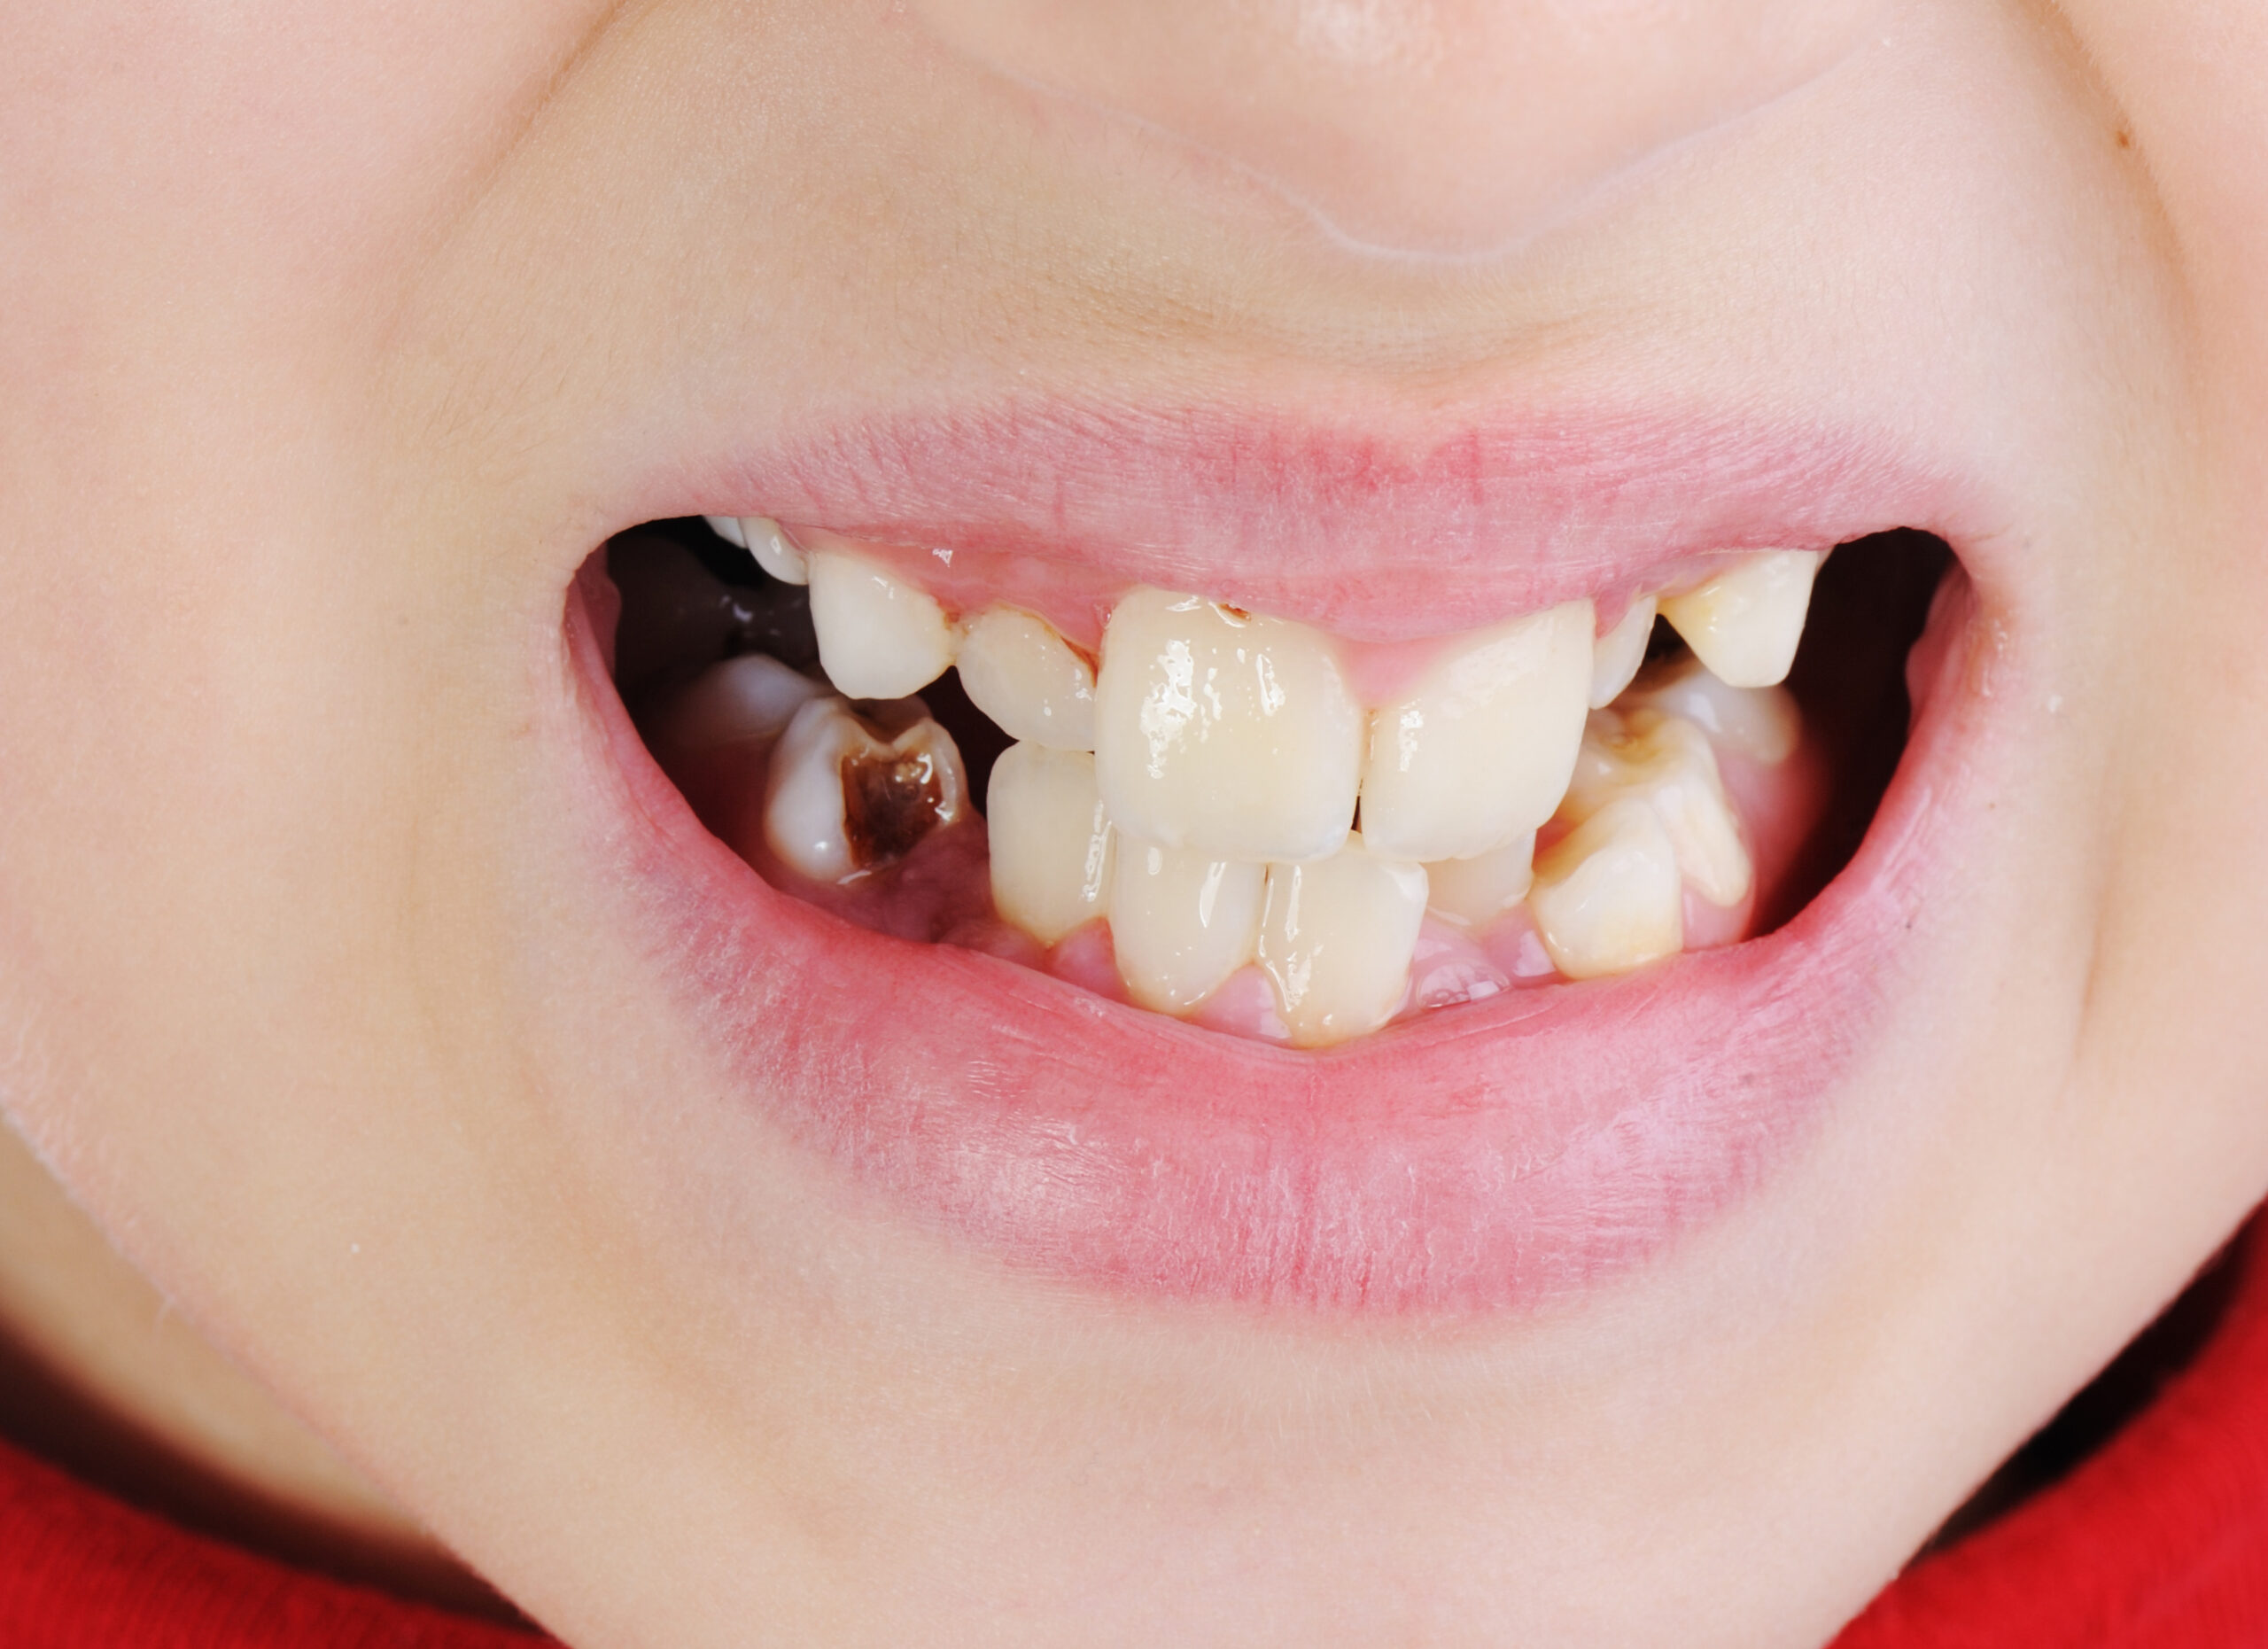 teeth stains causing decay